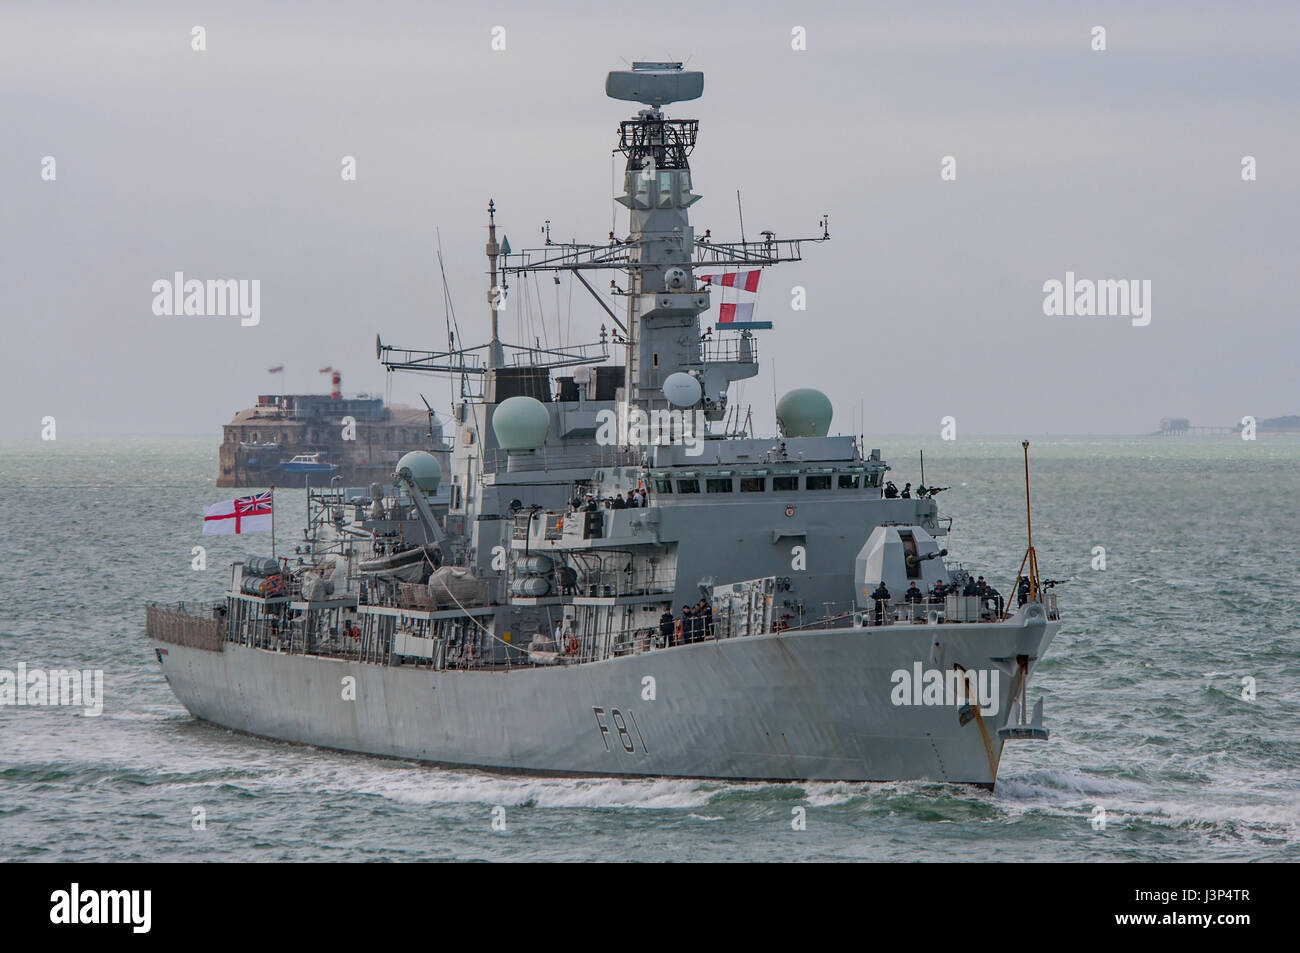 The British Royal Navy Type 23 frigate HMS Sutherland (The Fighting Clan) arriving at Portsmouth, UK on the 17th - Stock Image